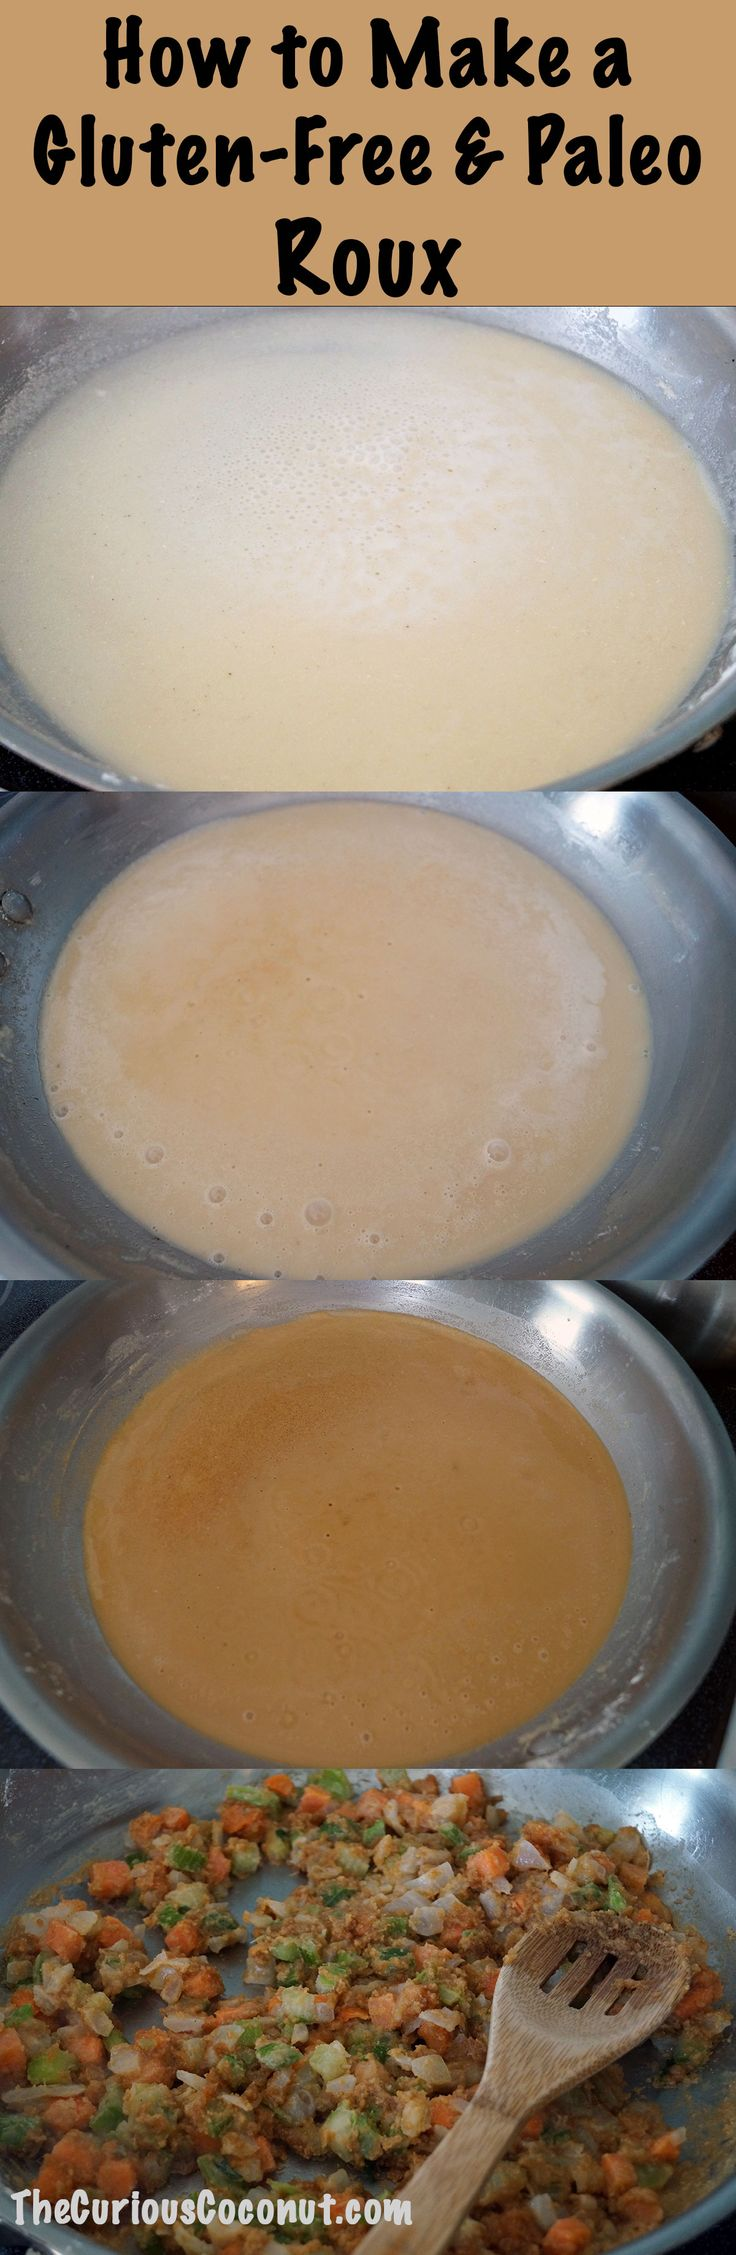 How to make a gluten-free roux to thicken soups, sauces, gravies and more! Also suitable for AIP and Paleo diets.  // TheCuriousCoconut.com